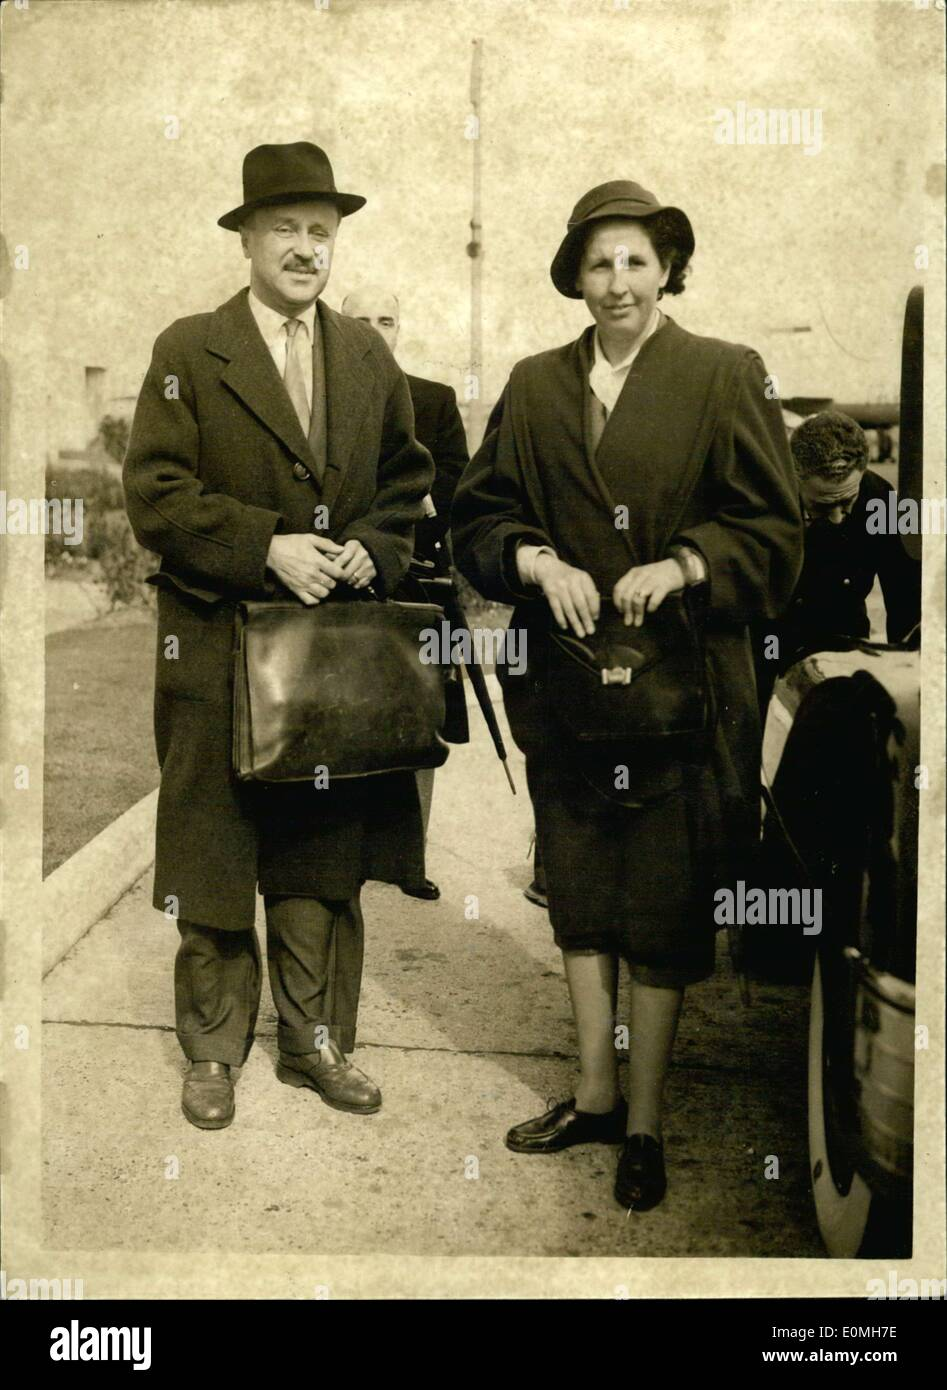 May 14, 1955 - Pretender To Portugese Throne Arrives: Don Duarte Duke of Braganga and Pretender to the throne of - Stock Image